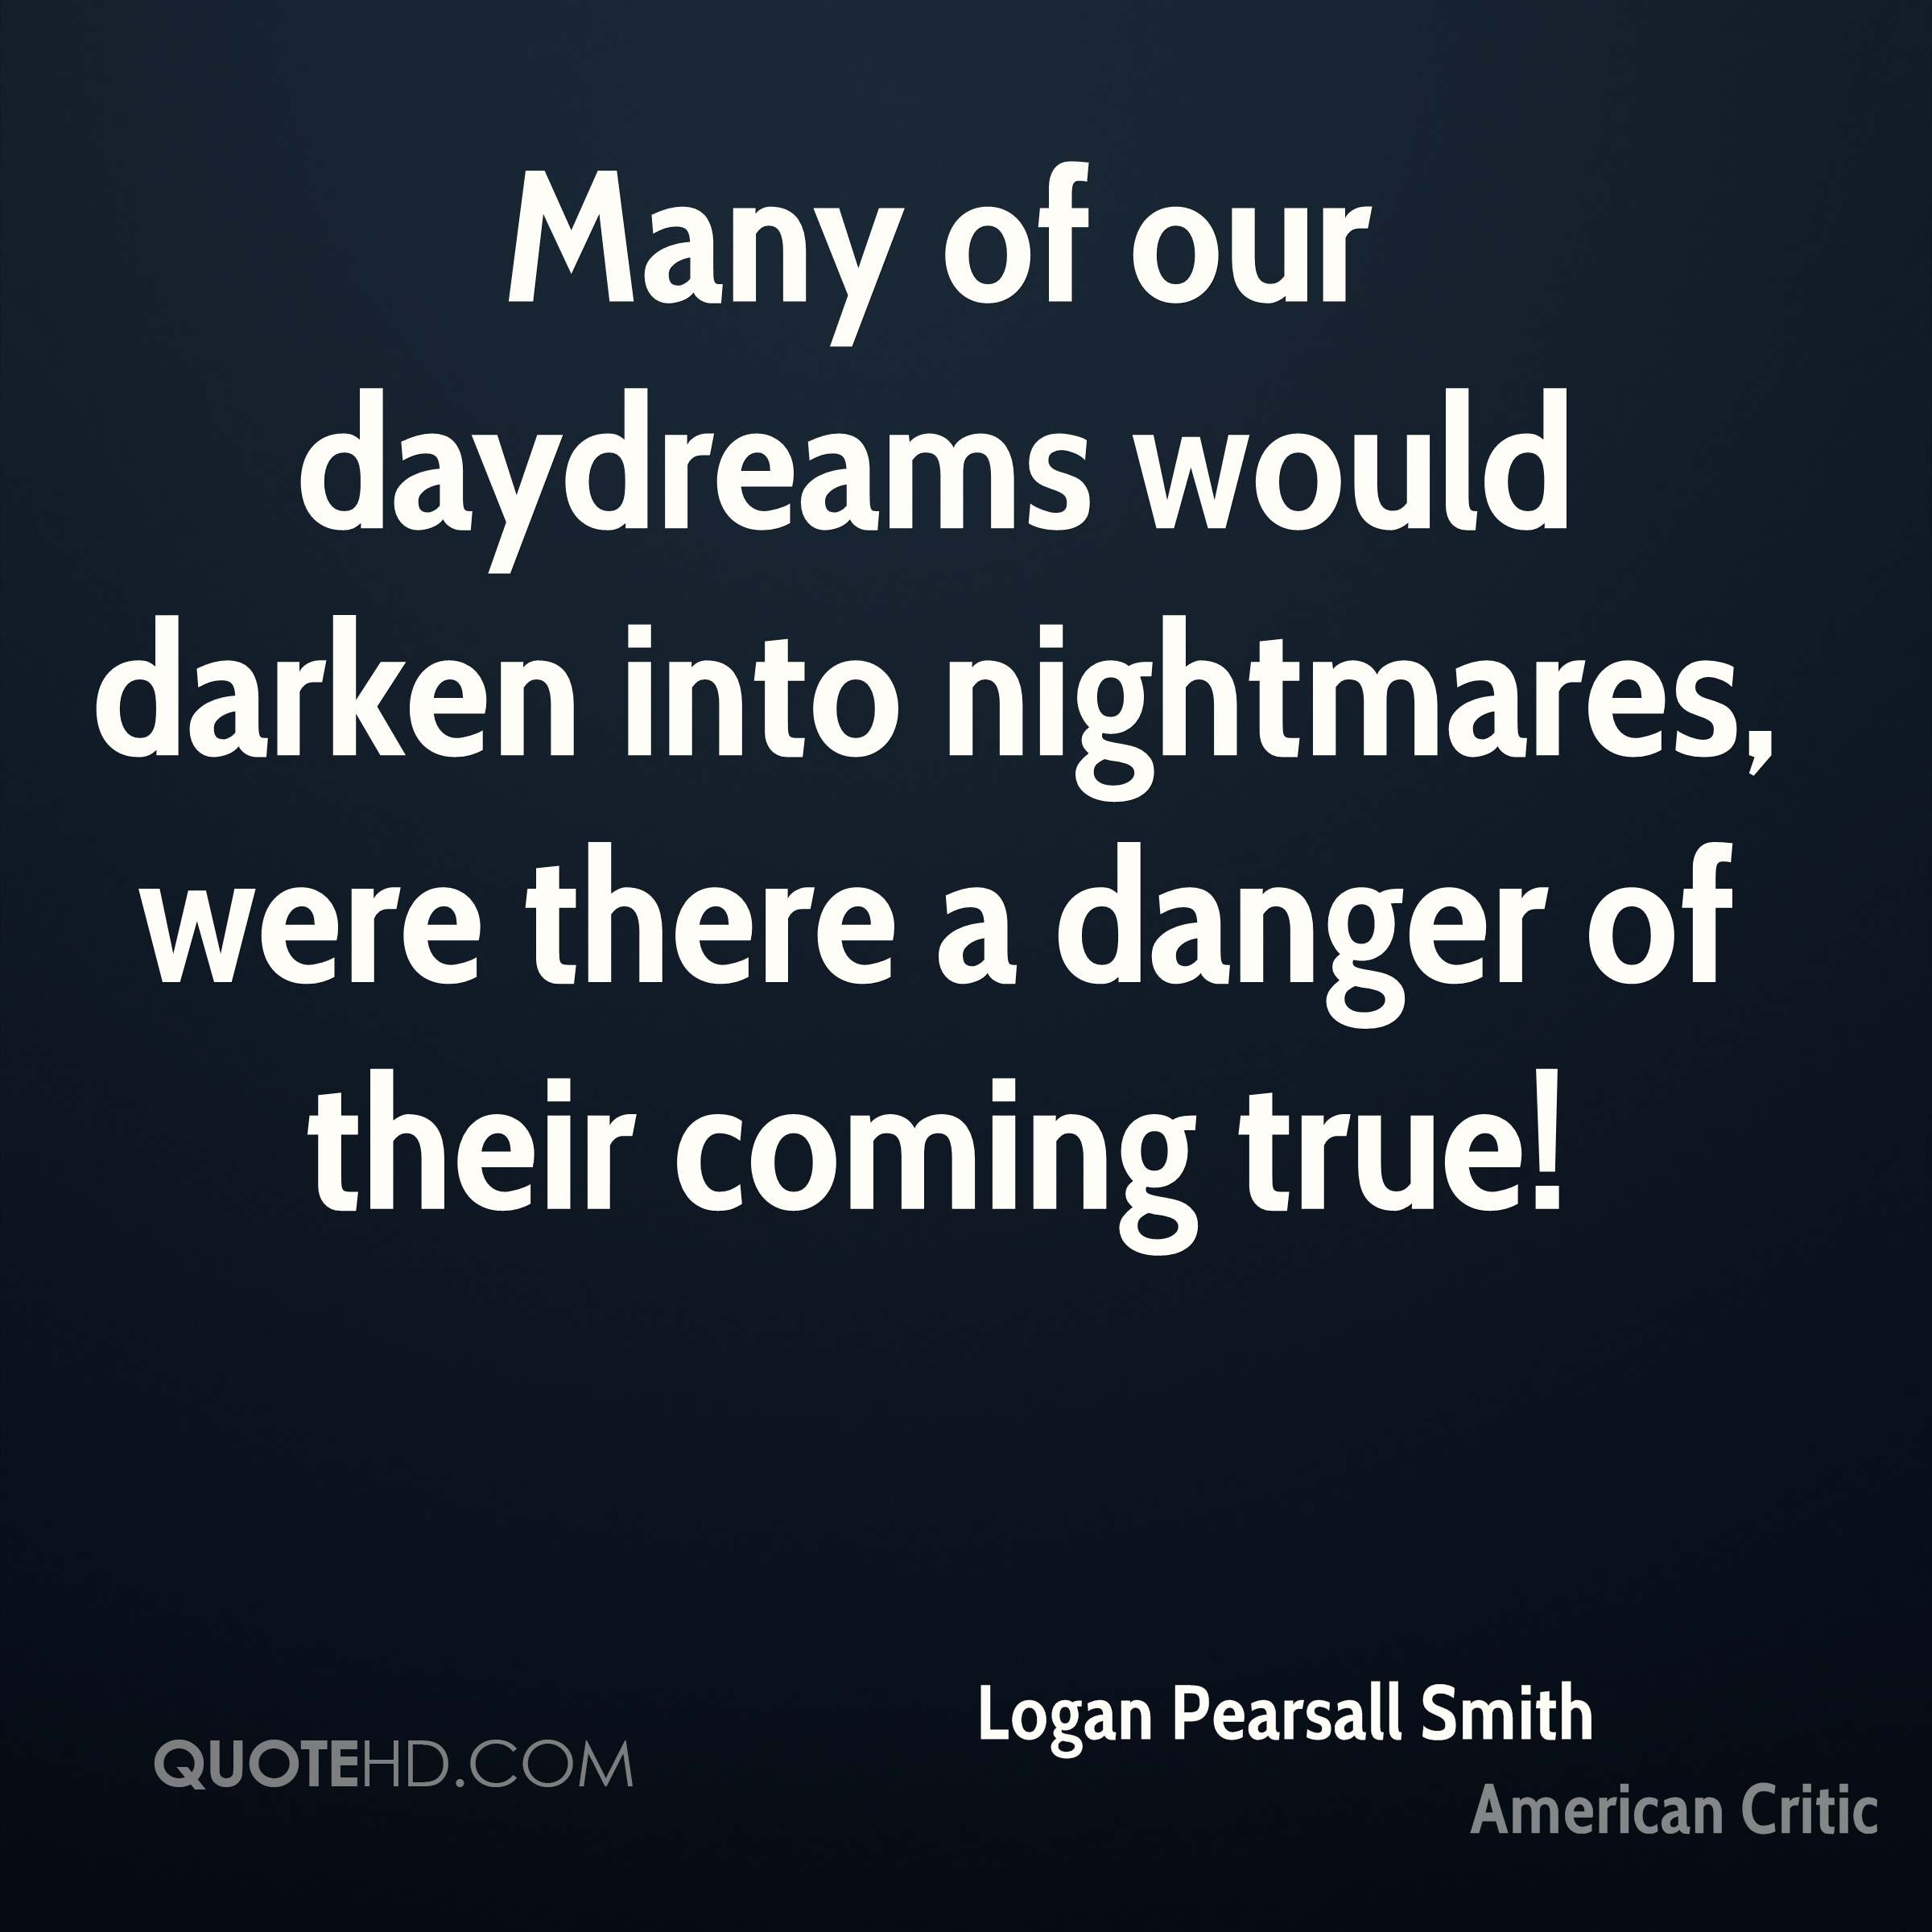 Many of our daydreams would darken into nightmares, were there a danger of their coming true!